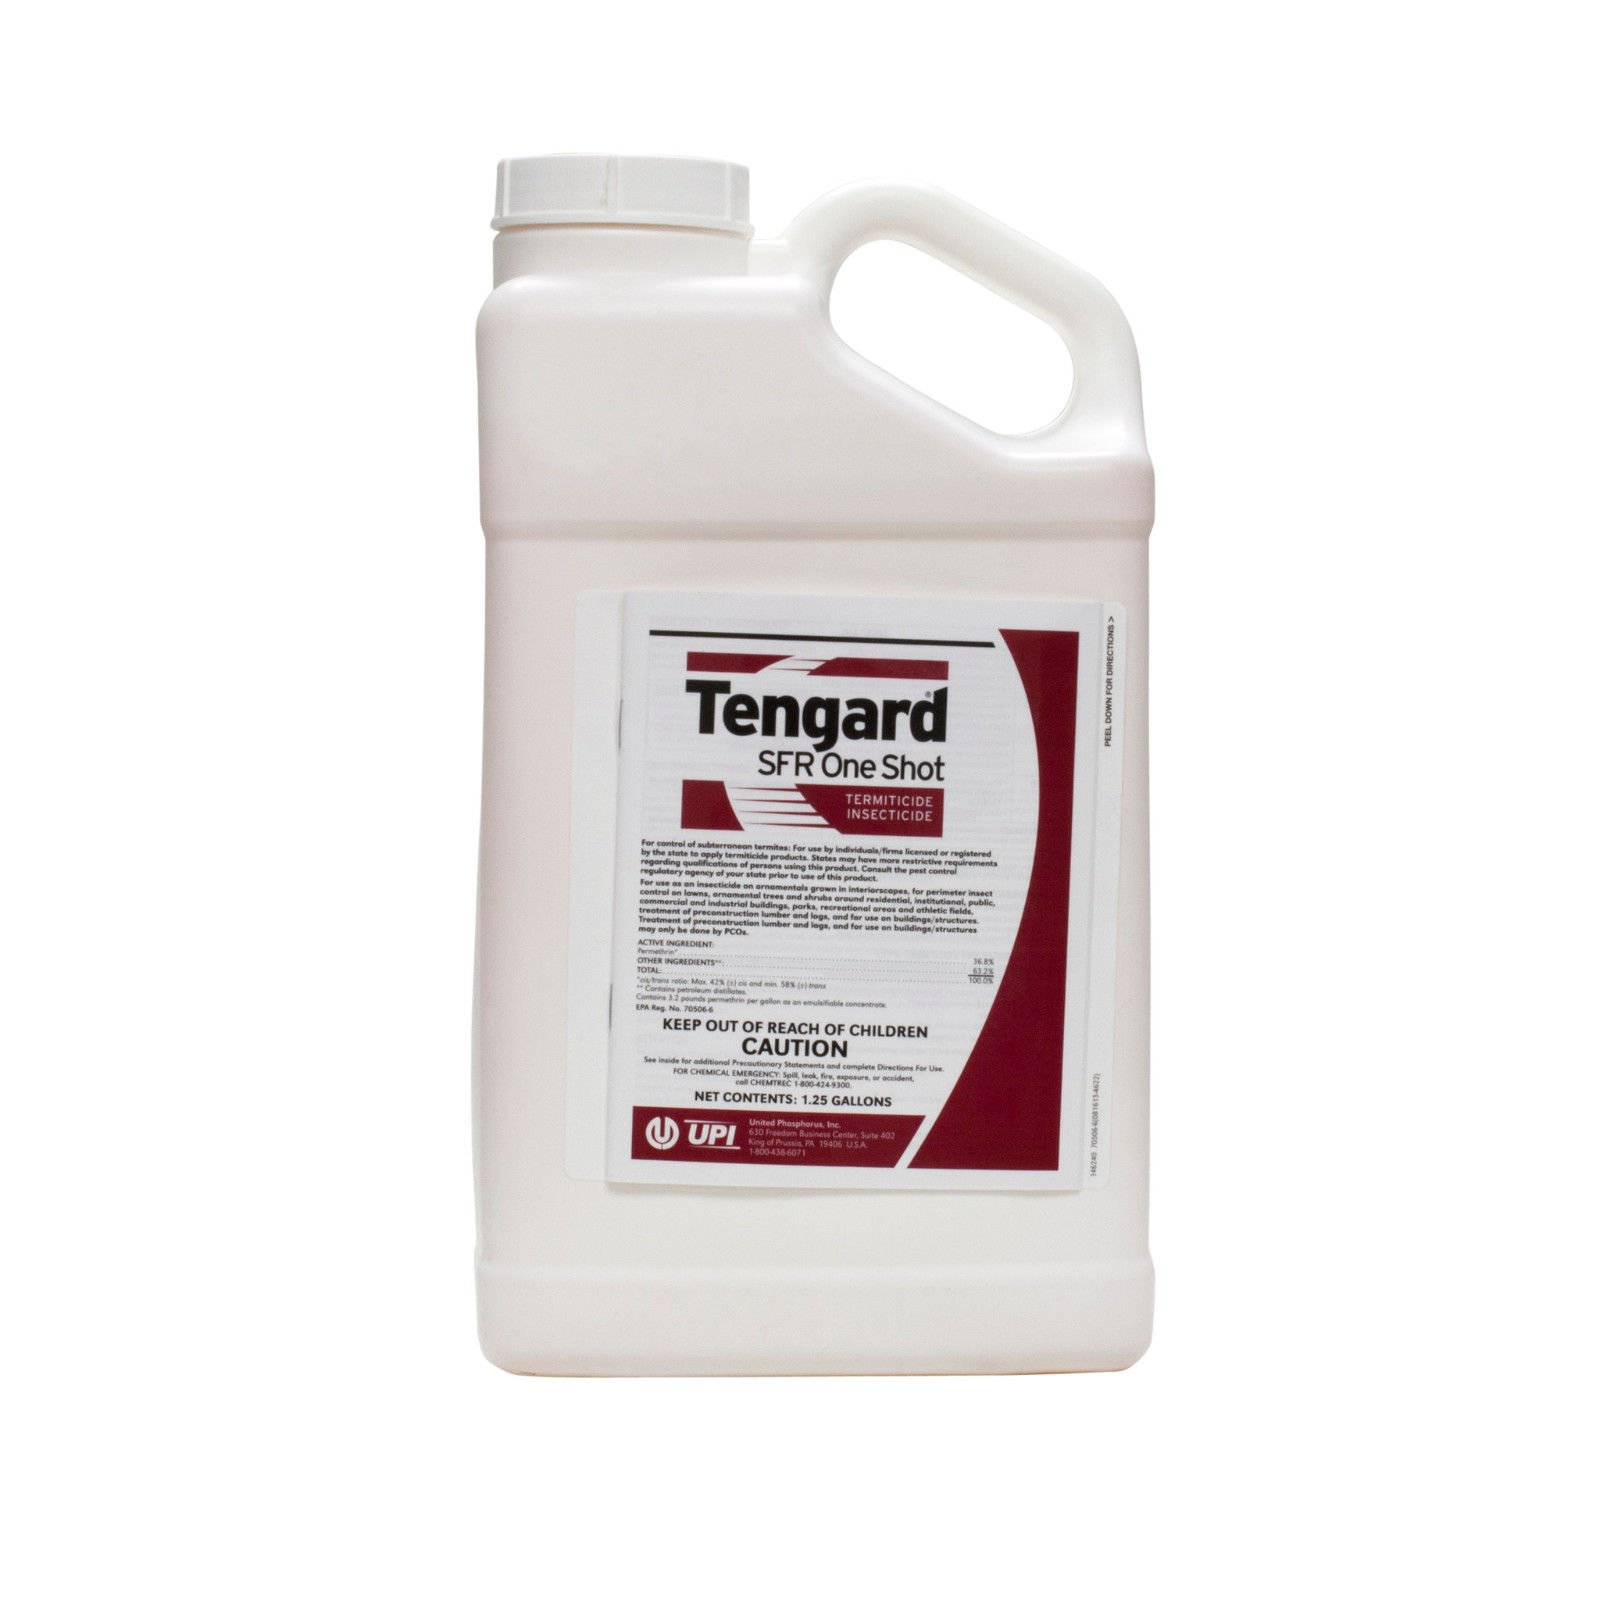 Tengard Sfr Termiticide Insecticide 1.25 Gal ***Not For Sale To: CA, New York, SC, CT, VT, MA